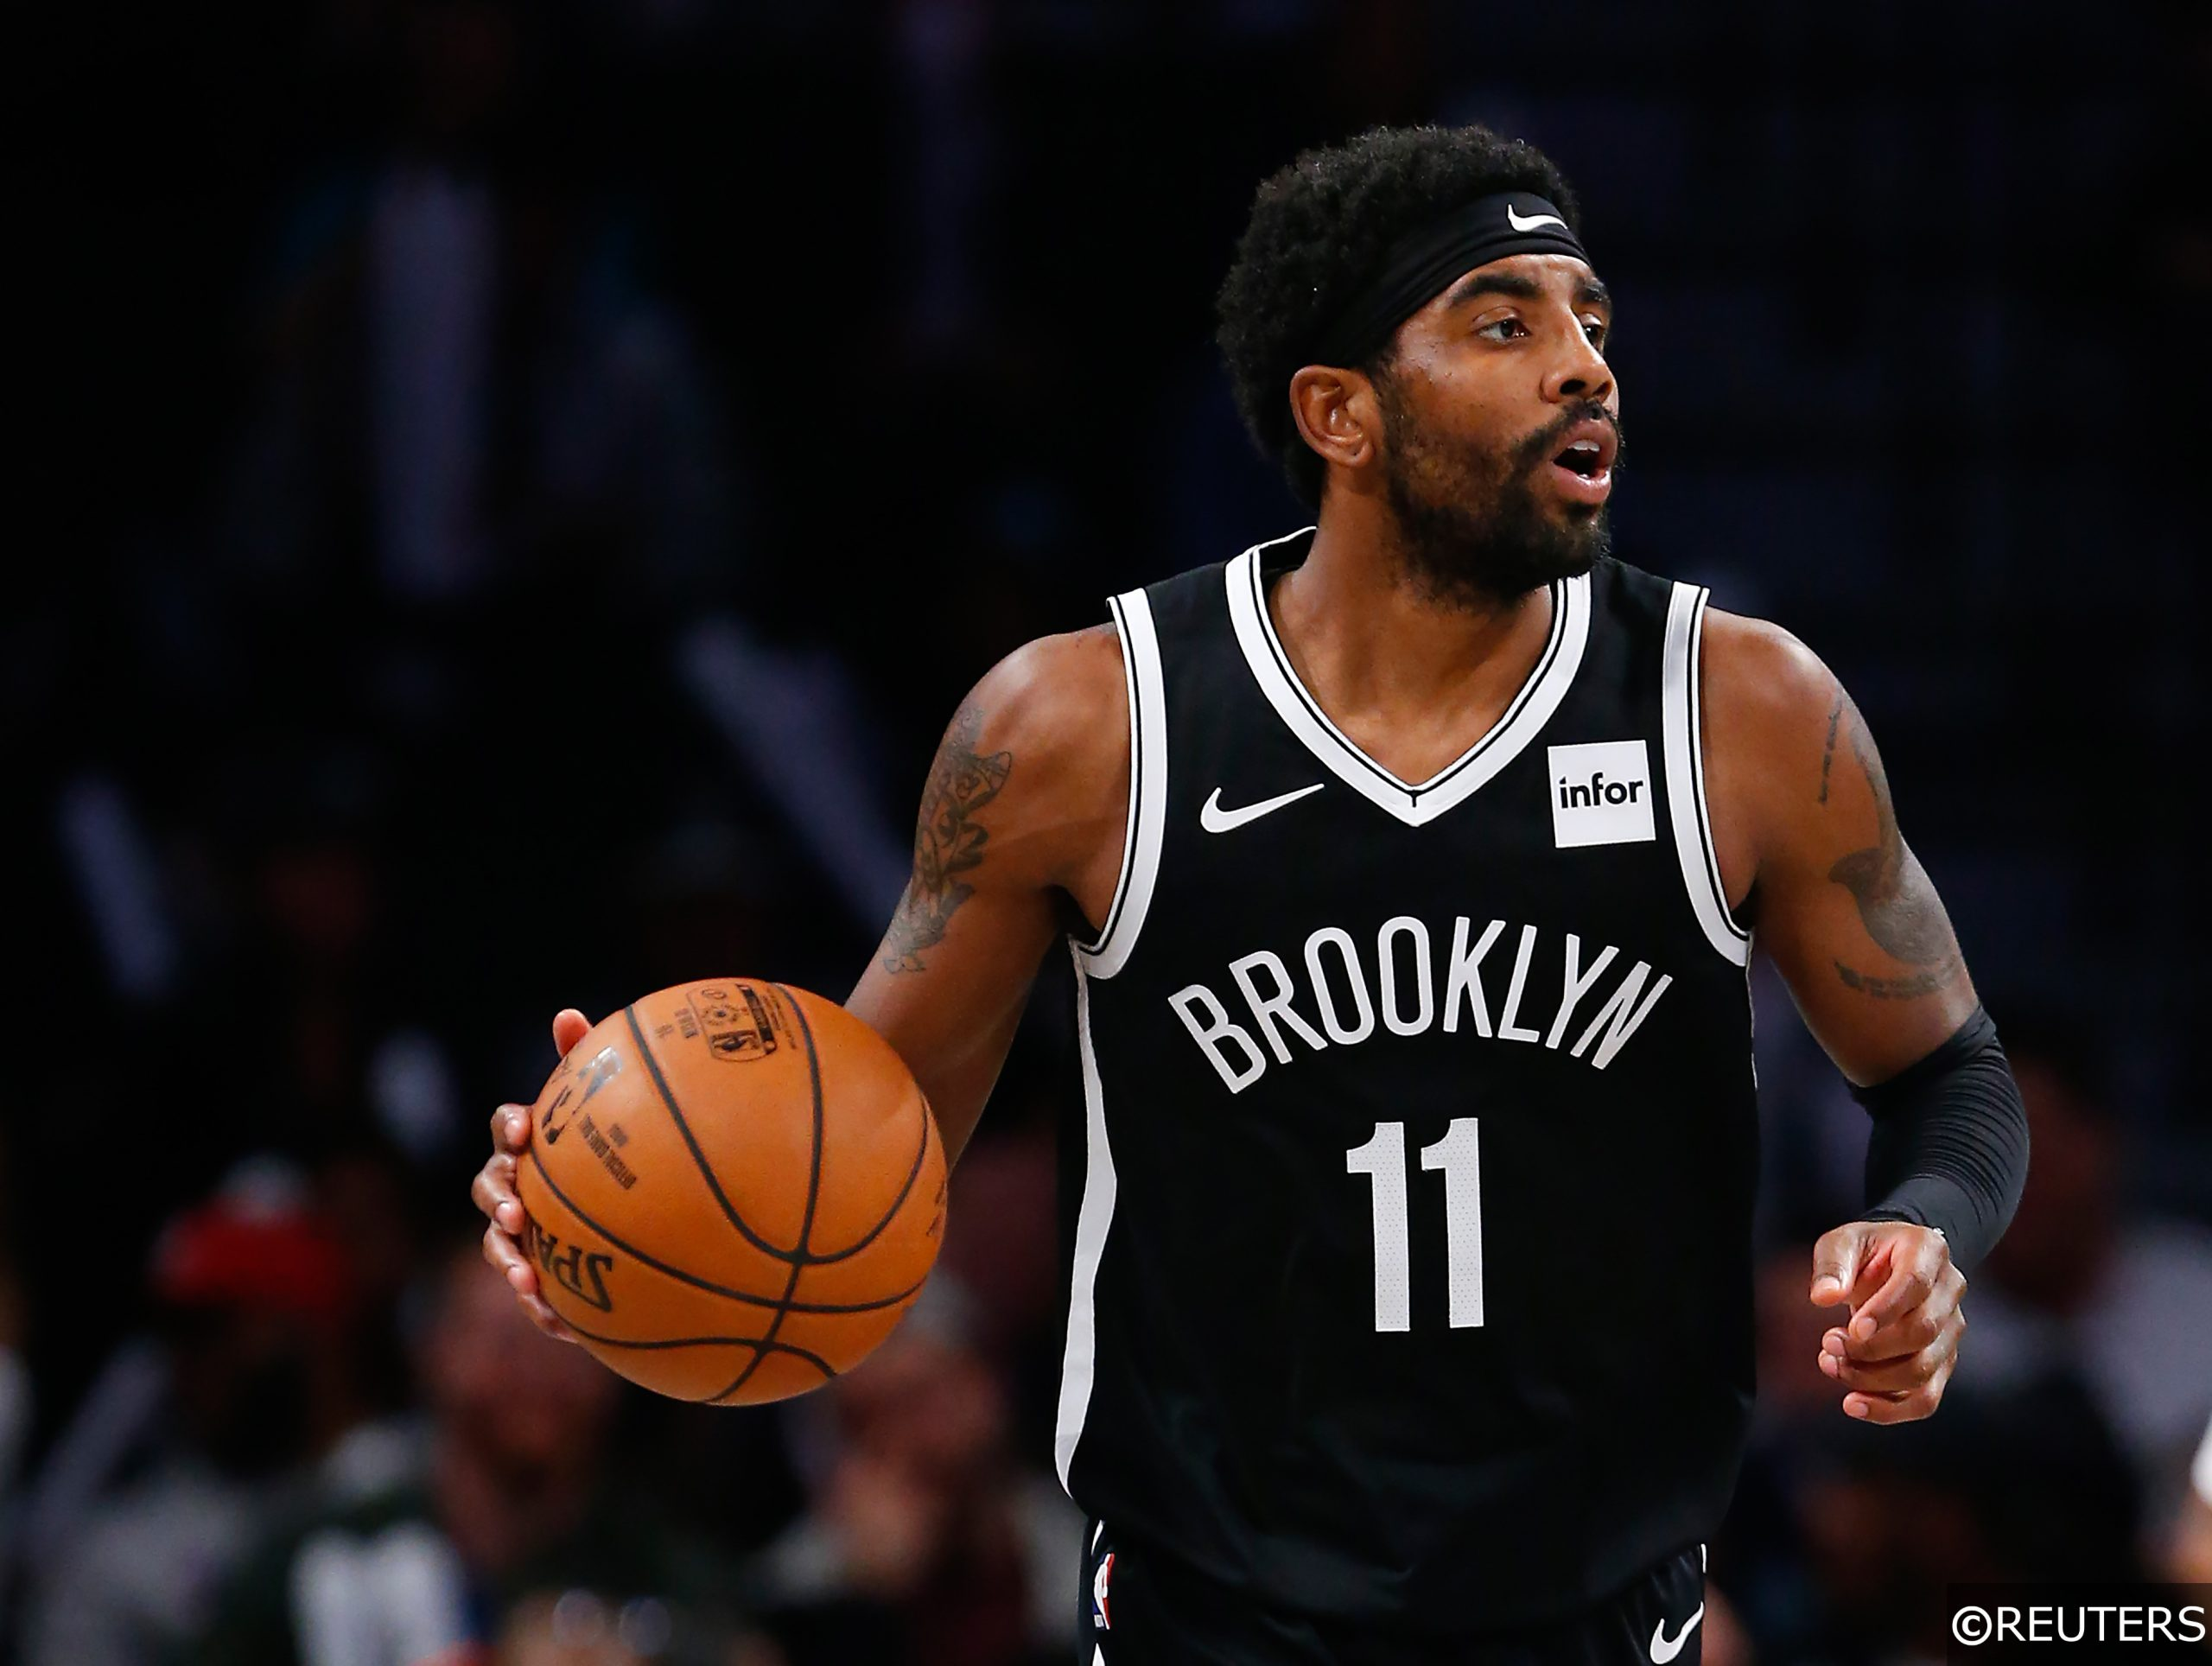 Kyrie Irving Brooklyn Nets vs Indiana Pacers NBA 2020